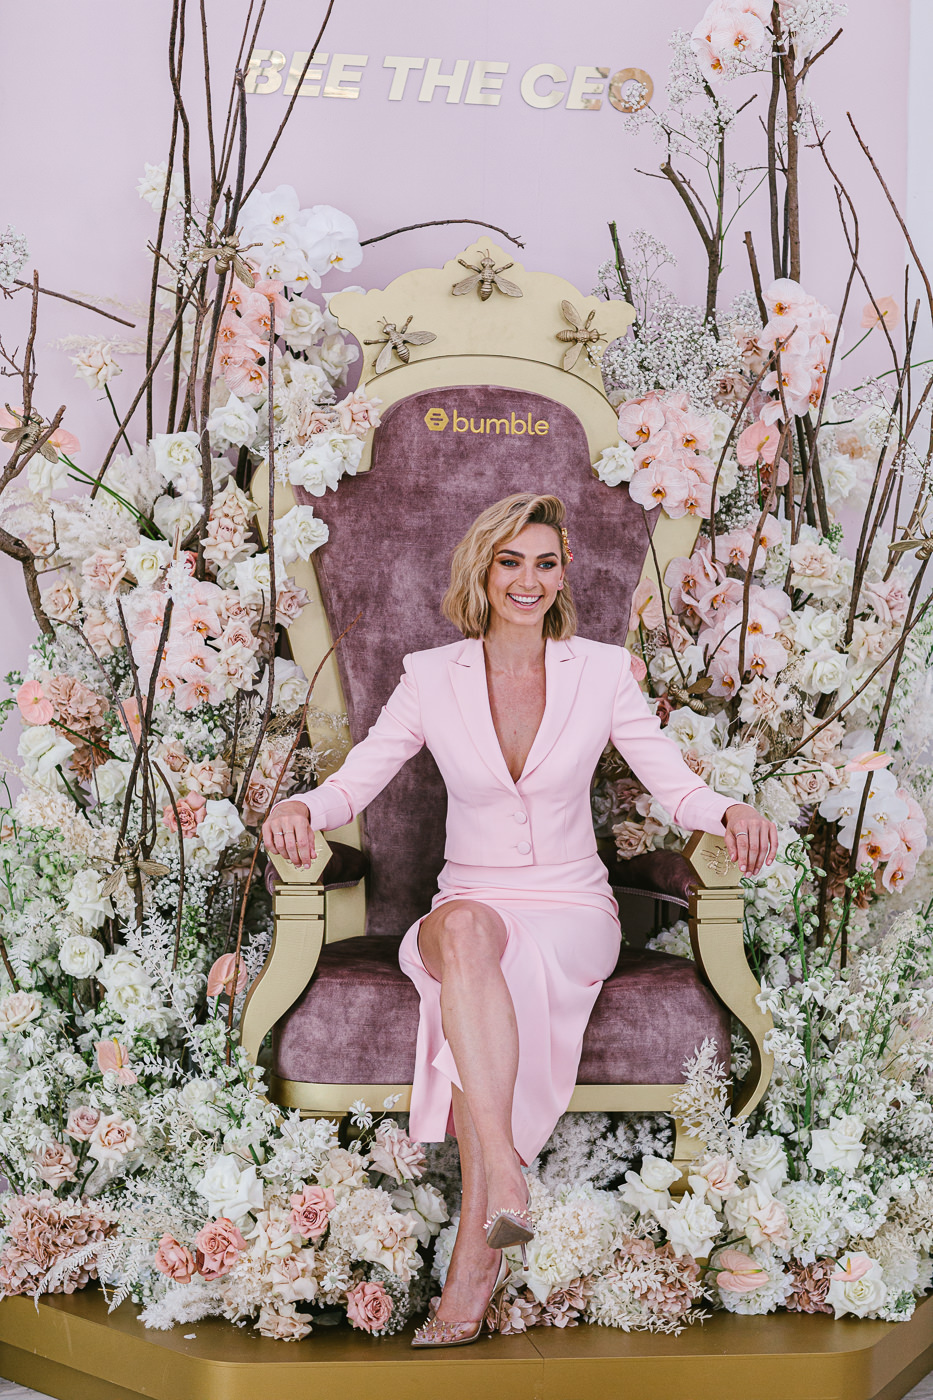 Bumble Marketing Director APAC Michelle Battersby on flower throne